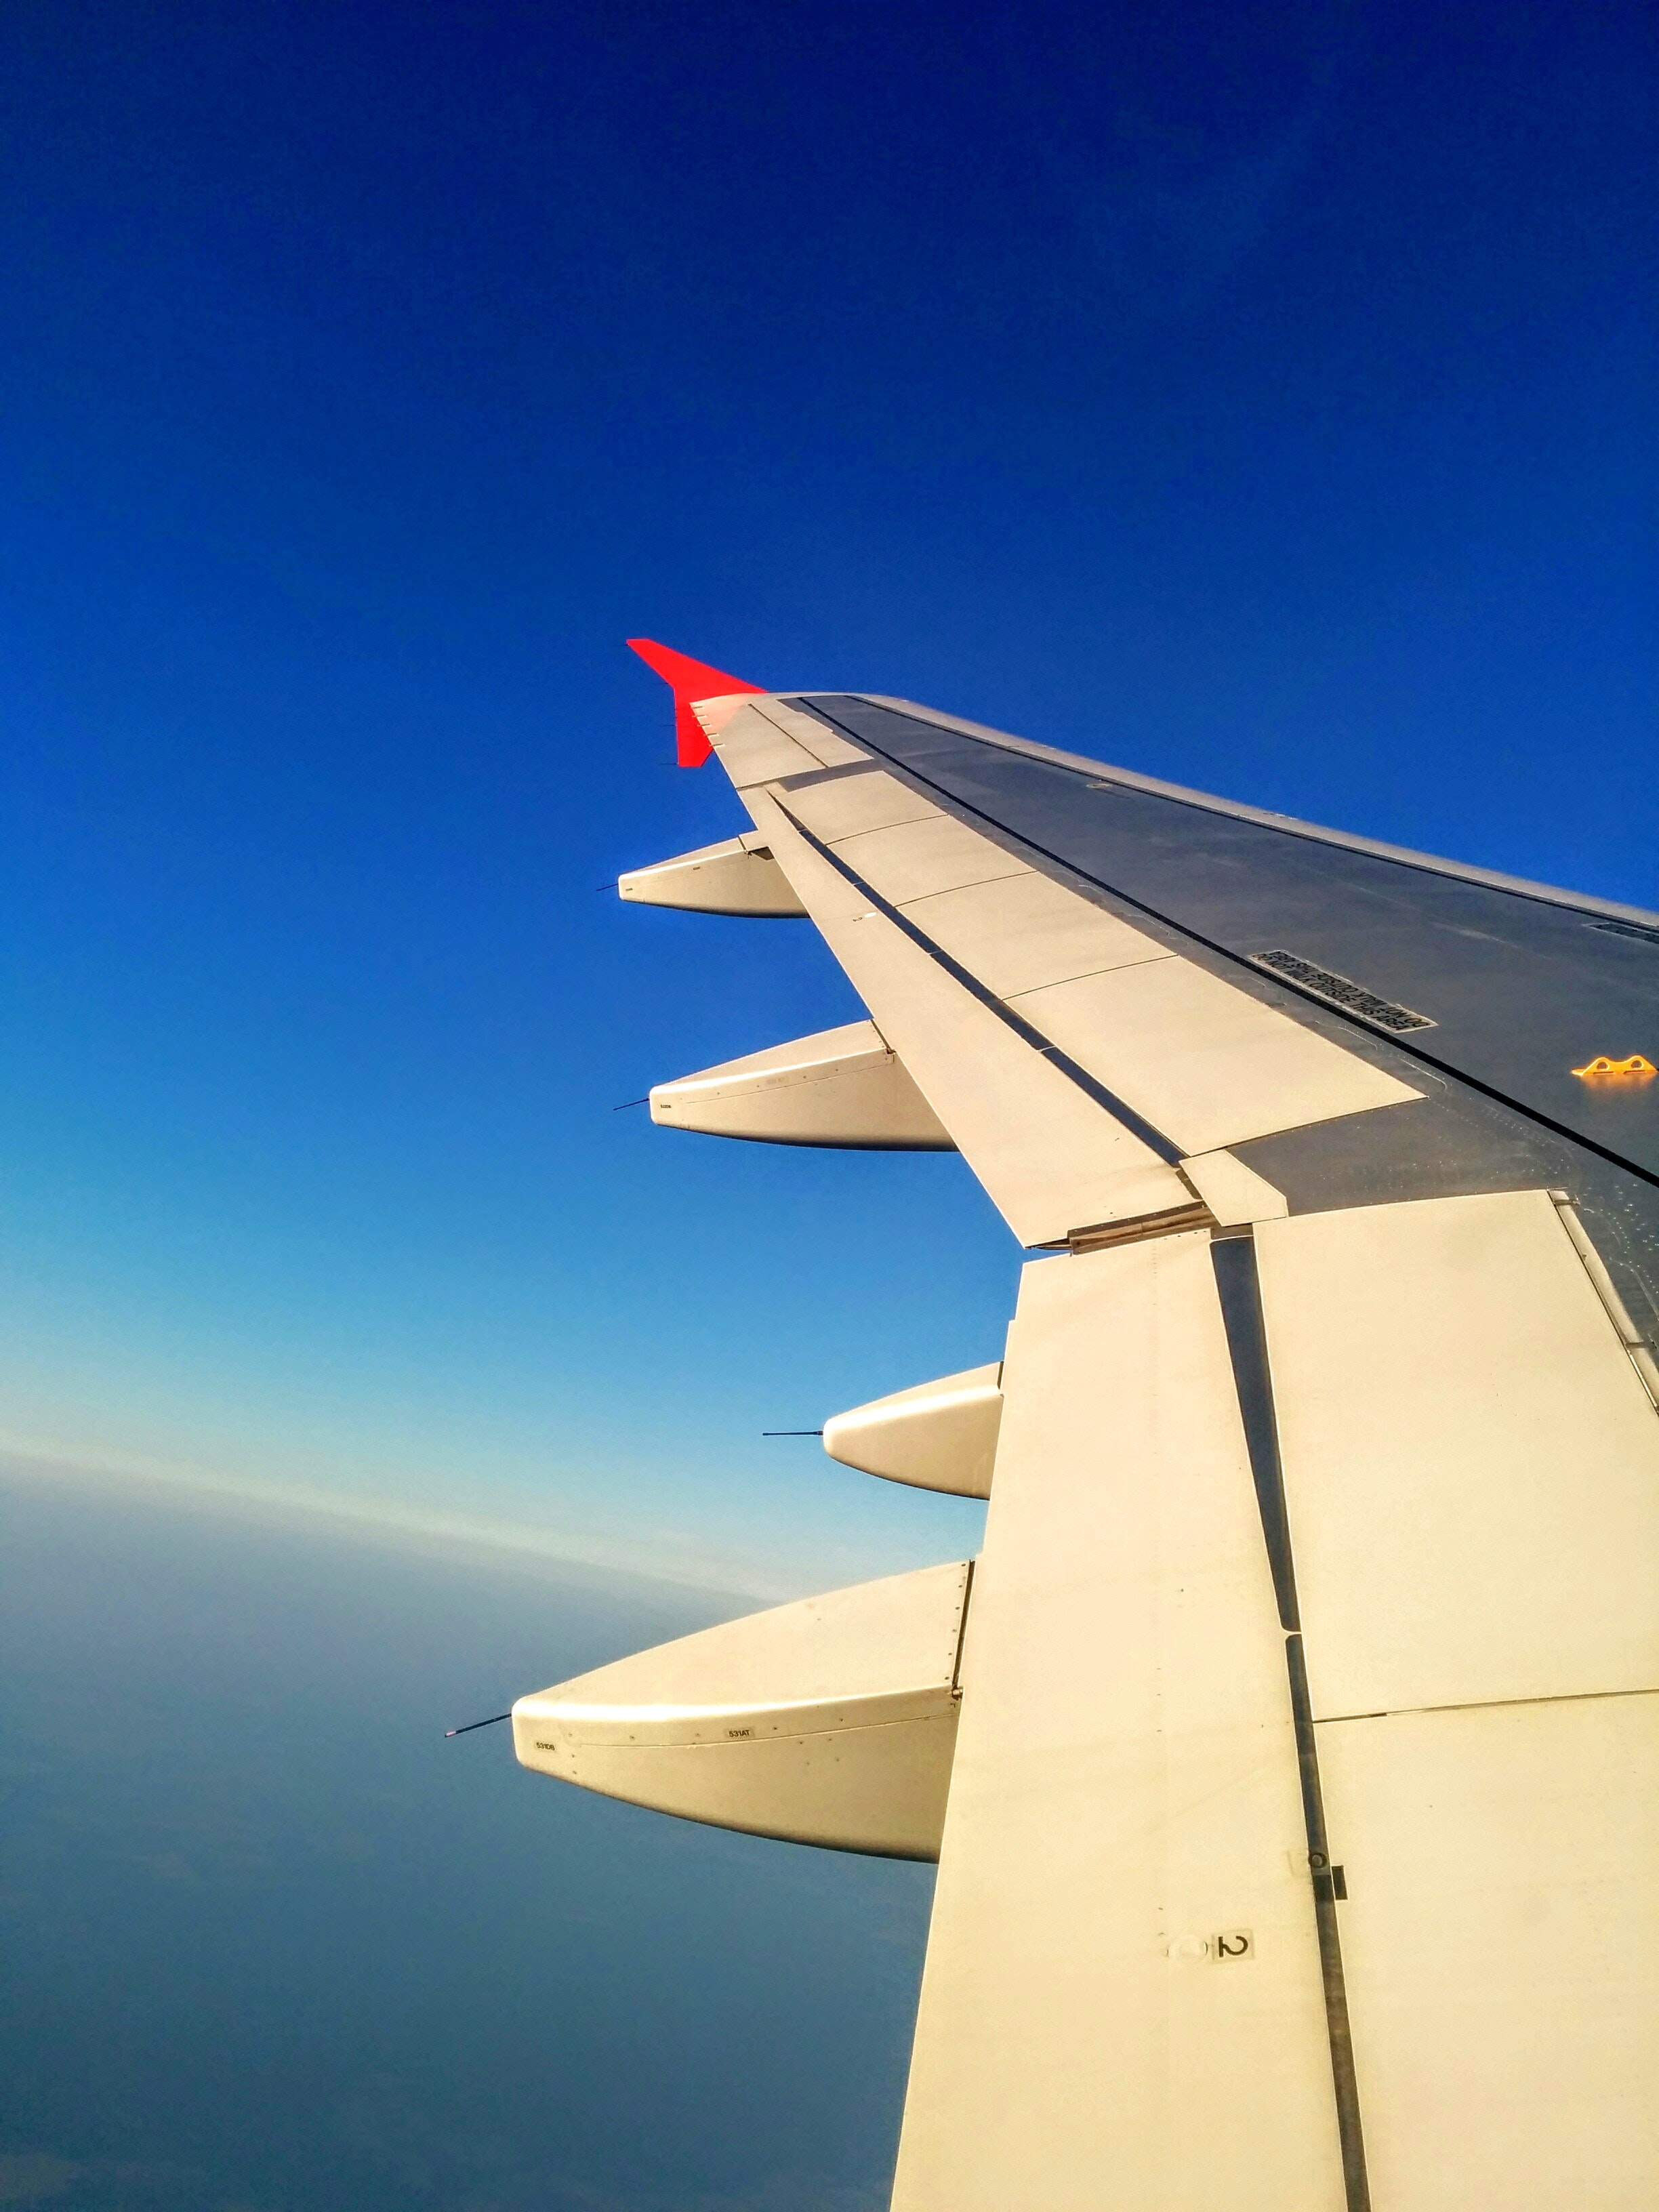 White and Black Left Plane Wing · Free Stock Photo